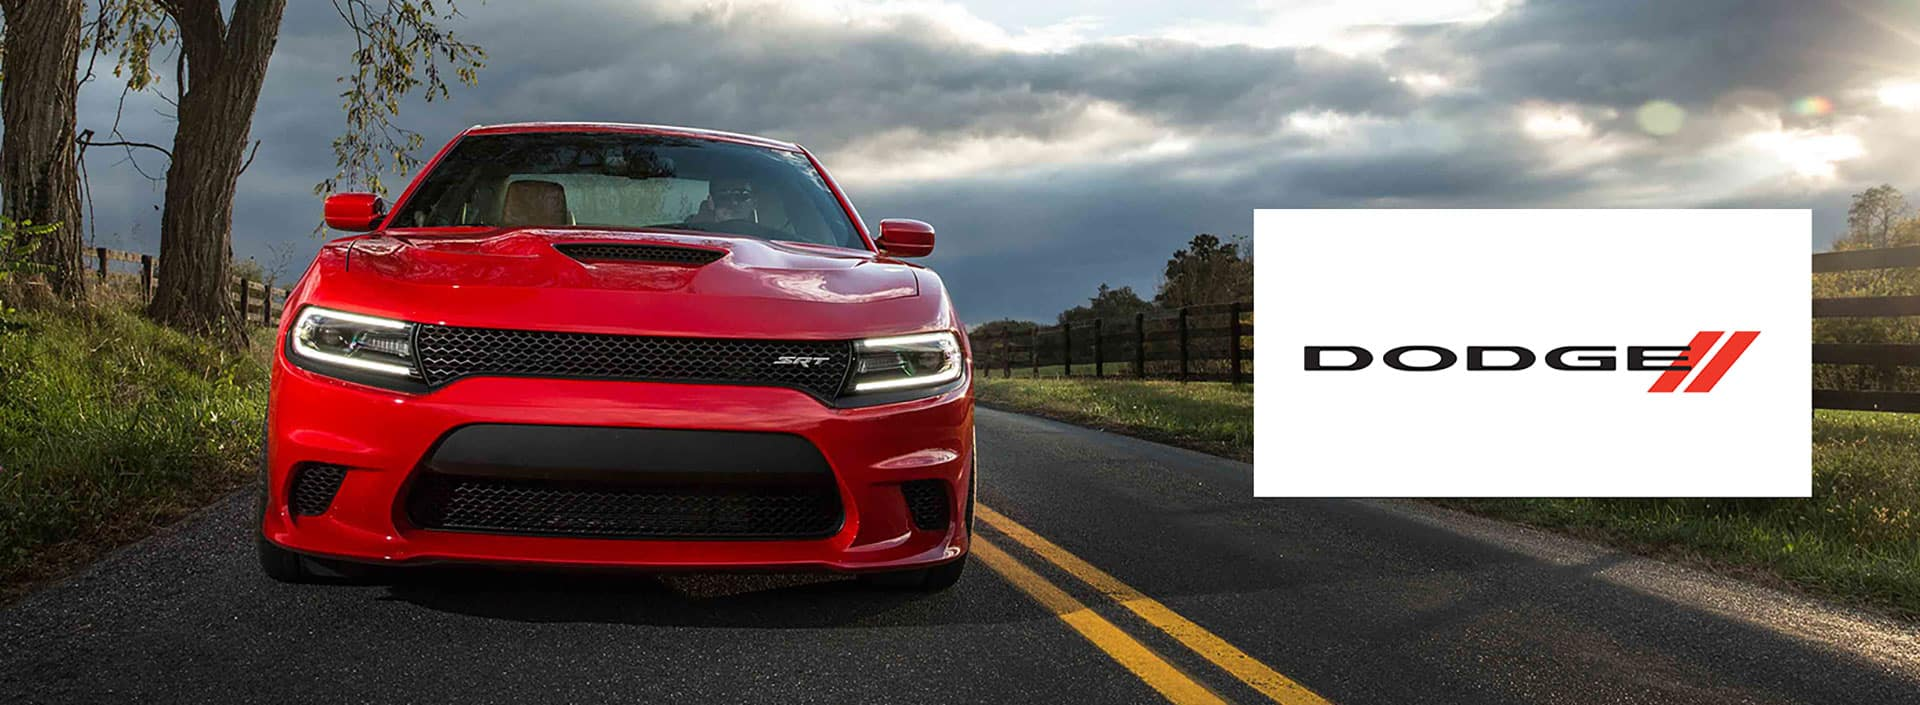 Front view of the Dodge Charger driving down a long road.